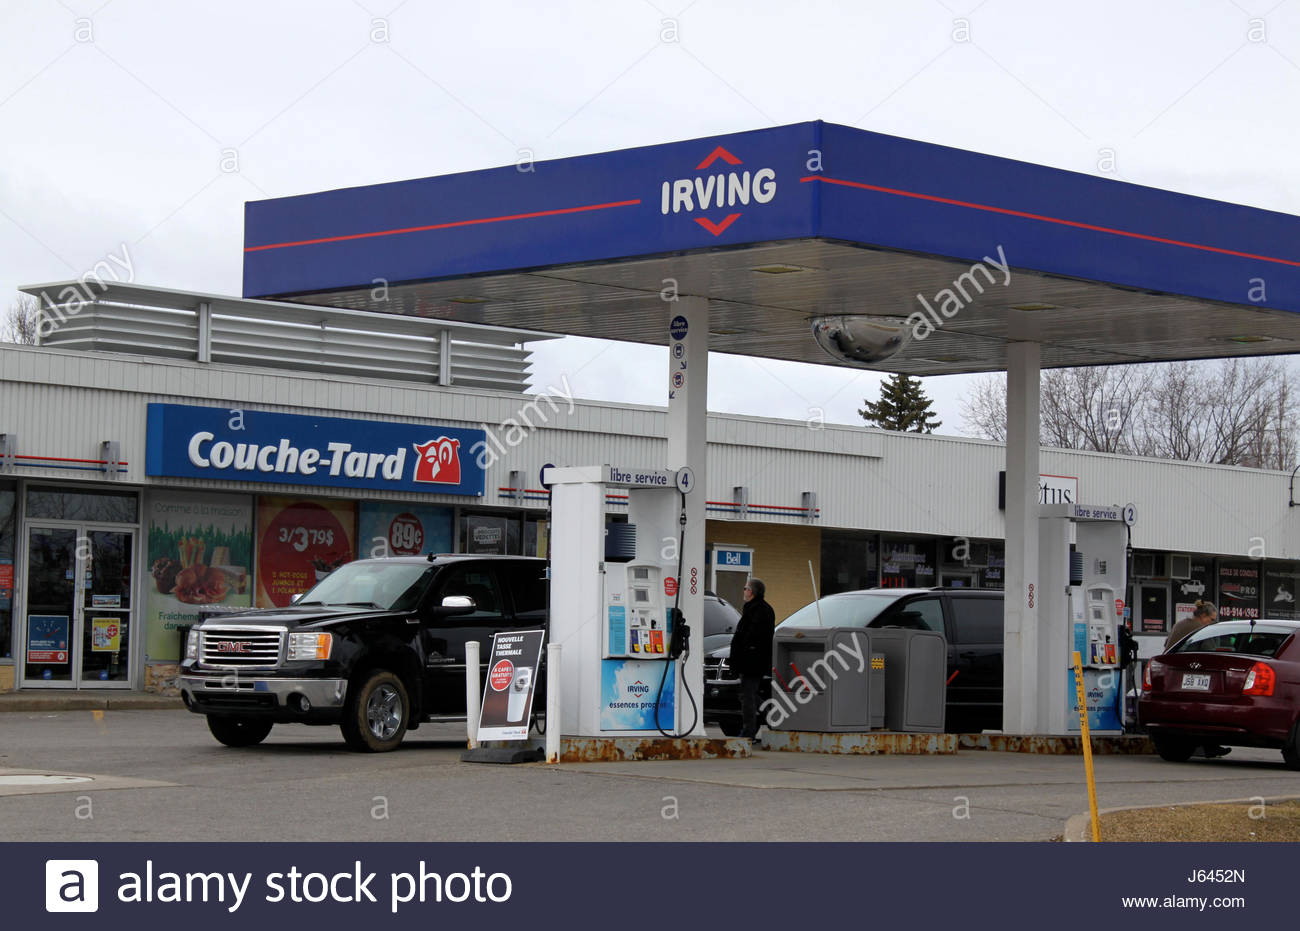 french gas station stock photos french gas station stock images alamy. Black Bedroom Furniture Sets. Home Design Ideas